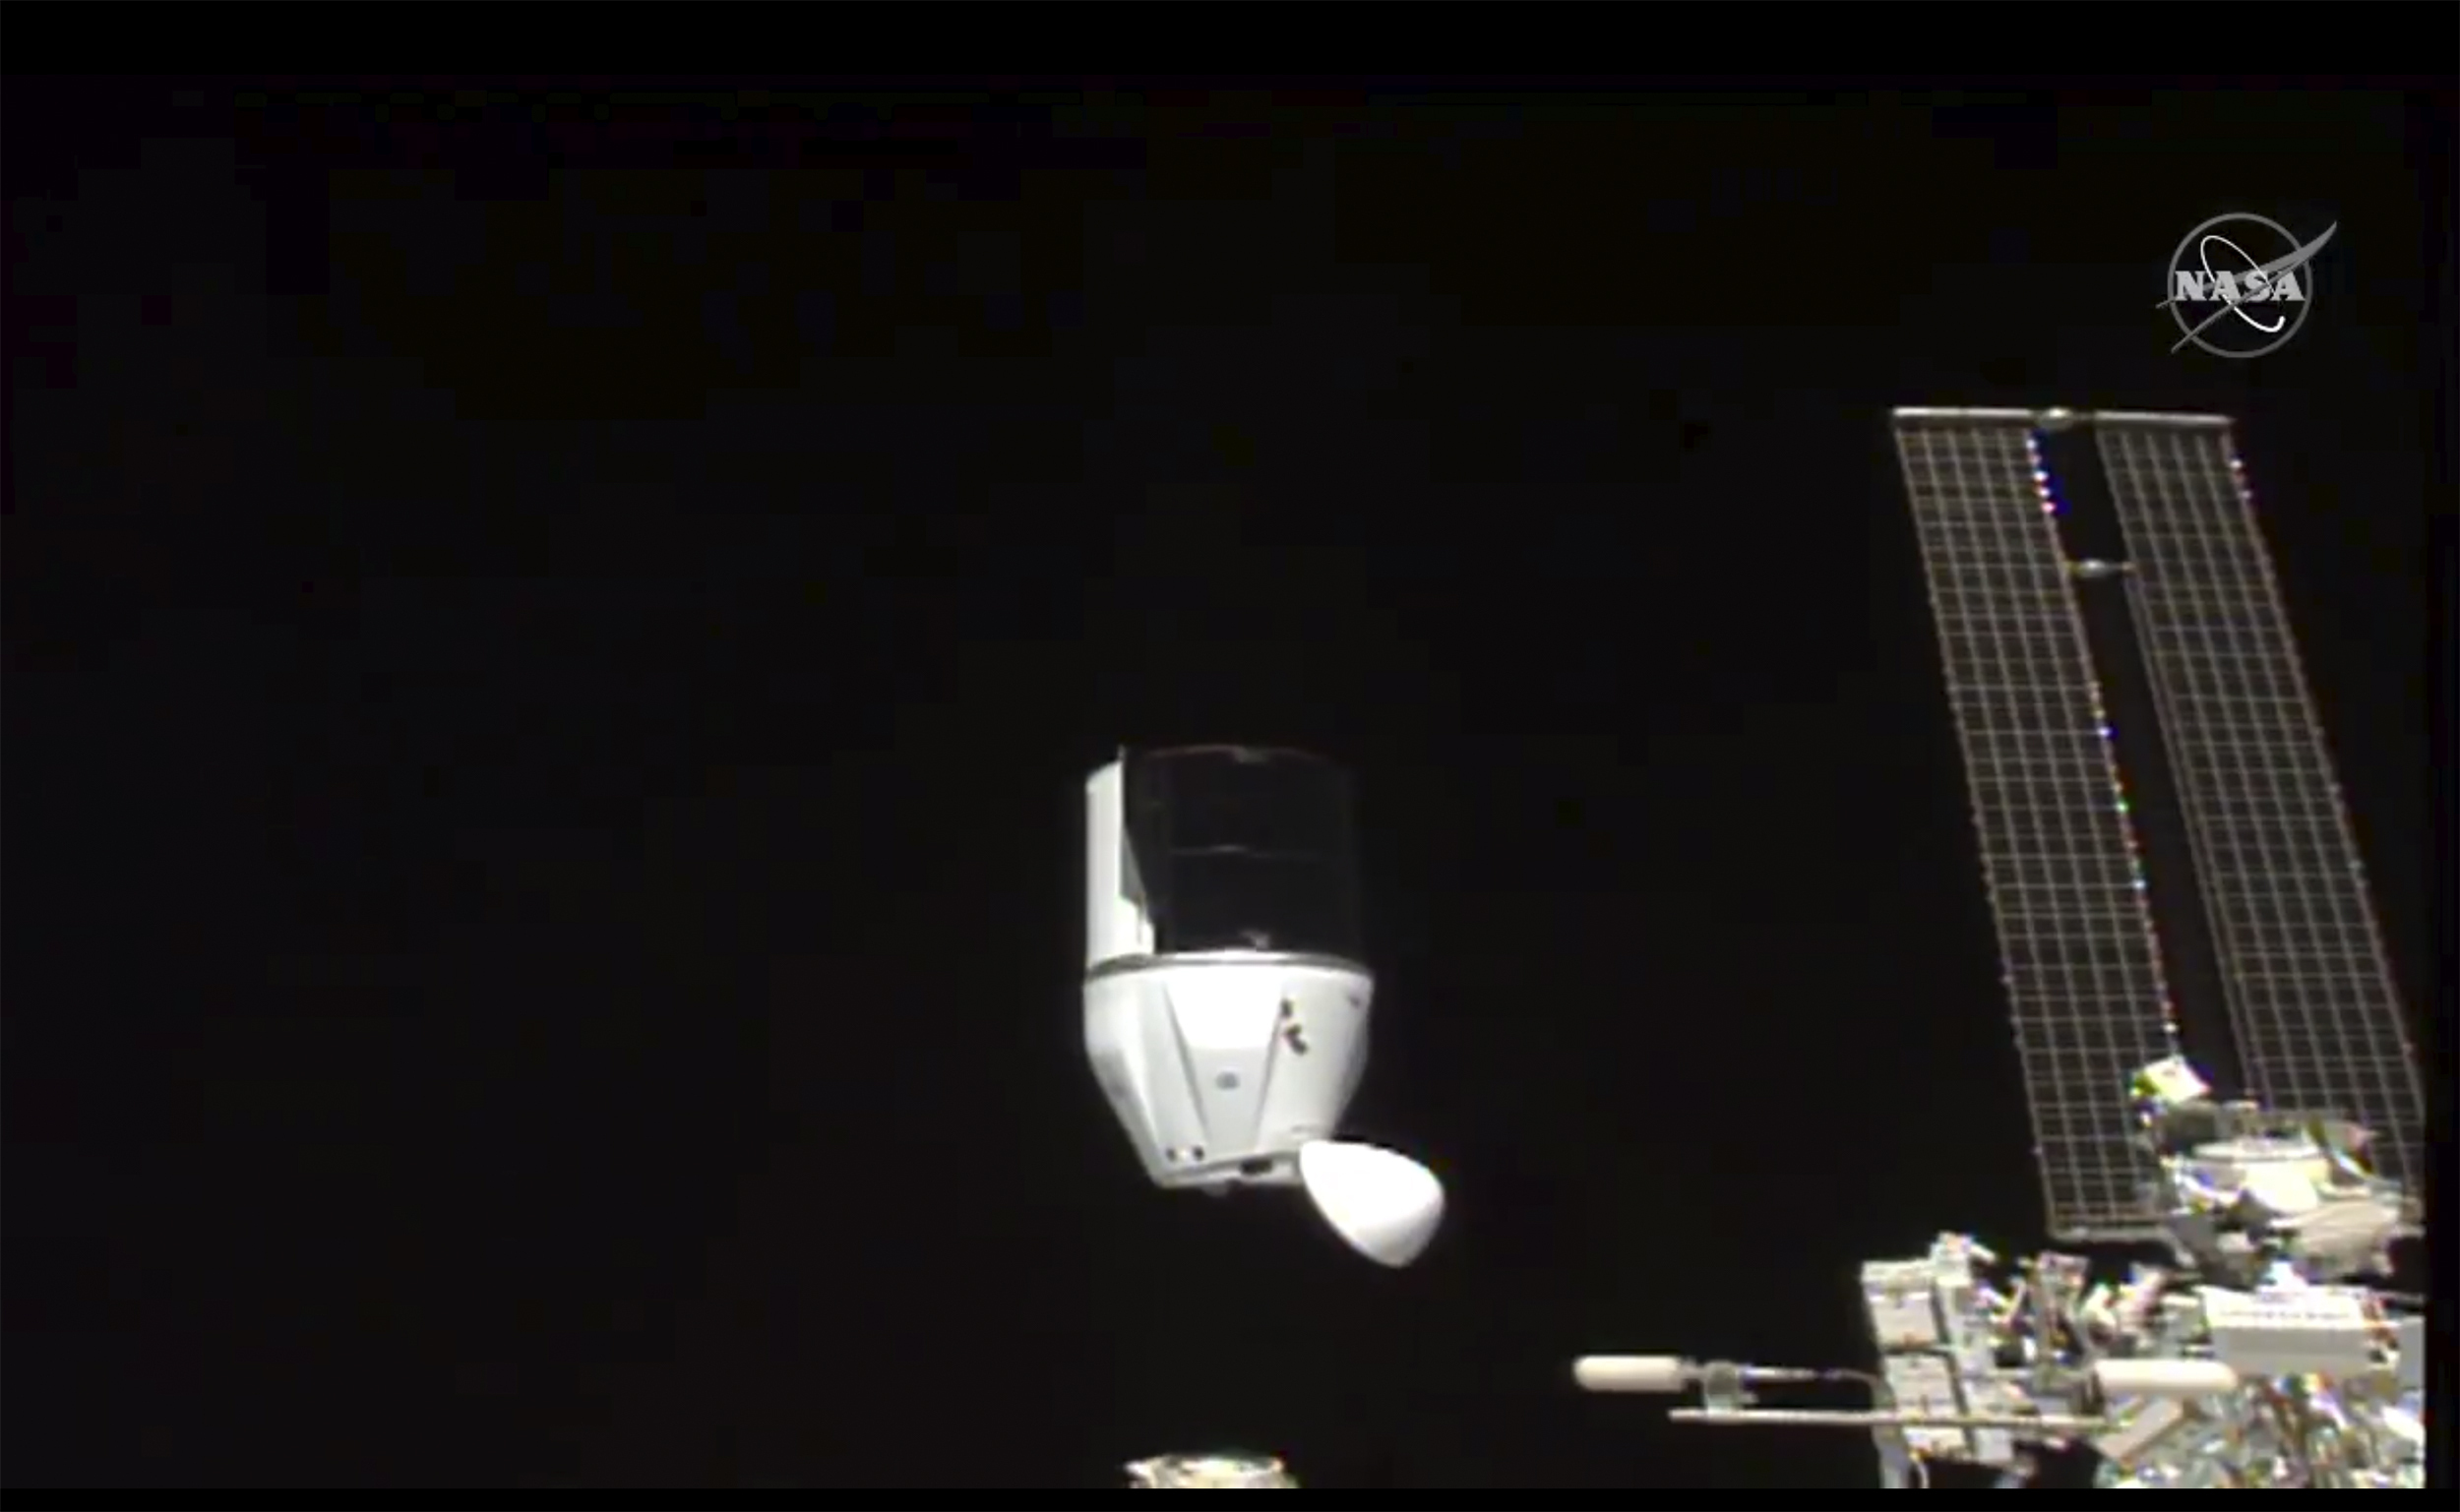 This photo provided by NASA shows SpaceX's Dragon undocking from International Space Station on Tuesday, Jan. 12, 2021. SpaceX's Dragon cargo capsule undocked with 12 bottles of Bordeaux wine and hundreds of snippets of Merlot and Cabernet Sauvignon vines.